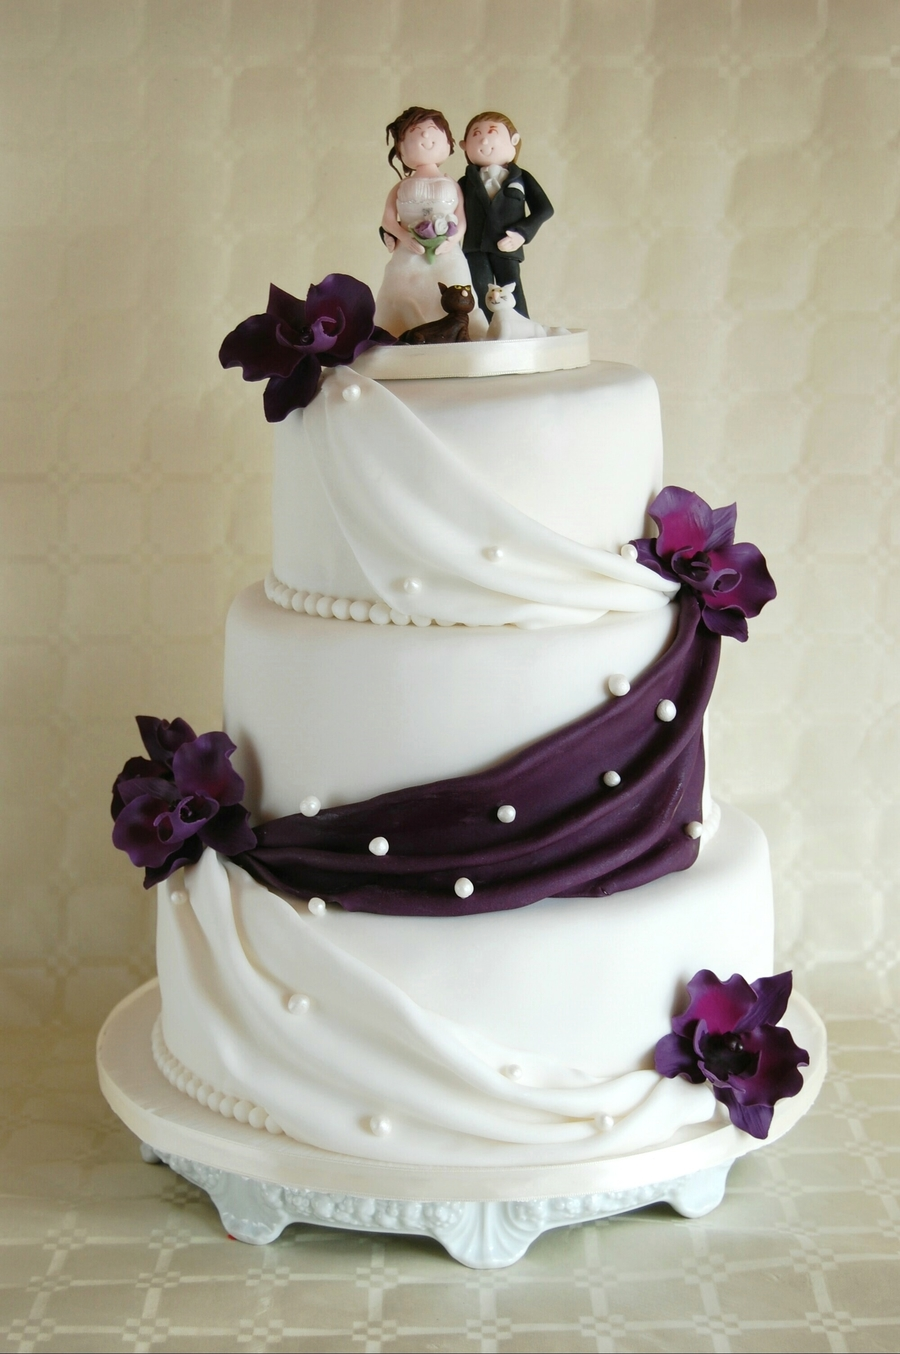 wedding cakes simple elegant simple wedding cake lilac orchids cakecentral 25467